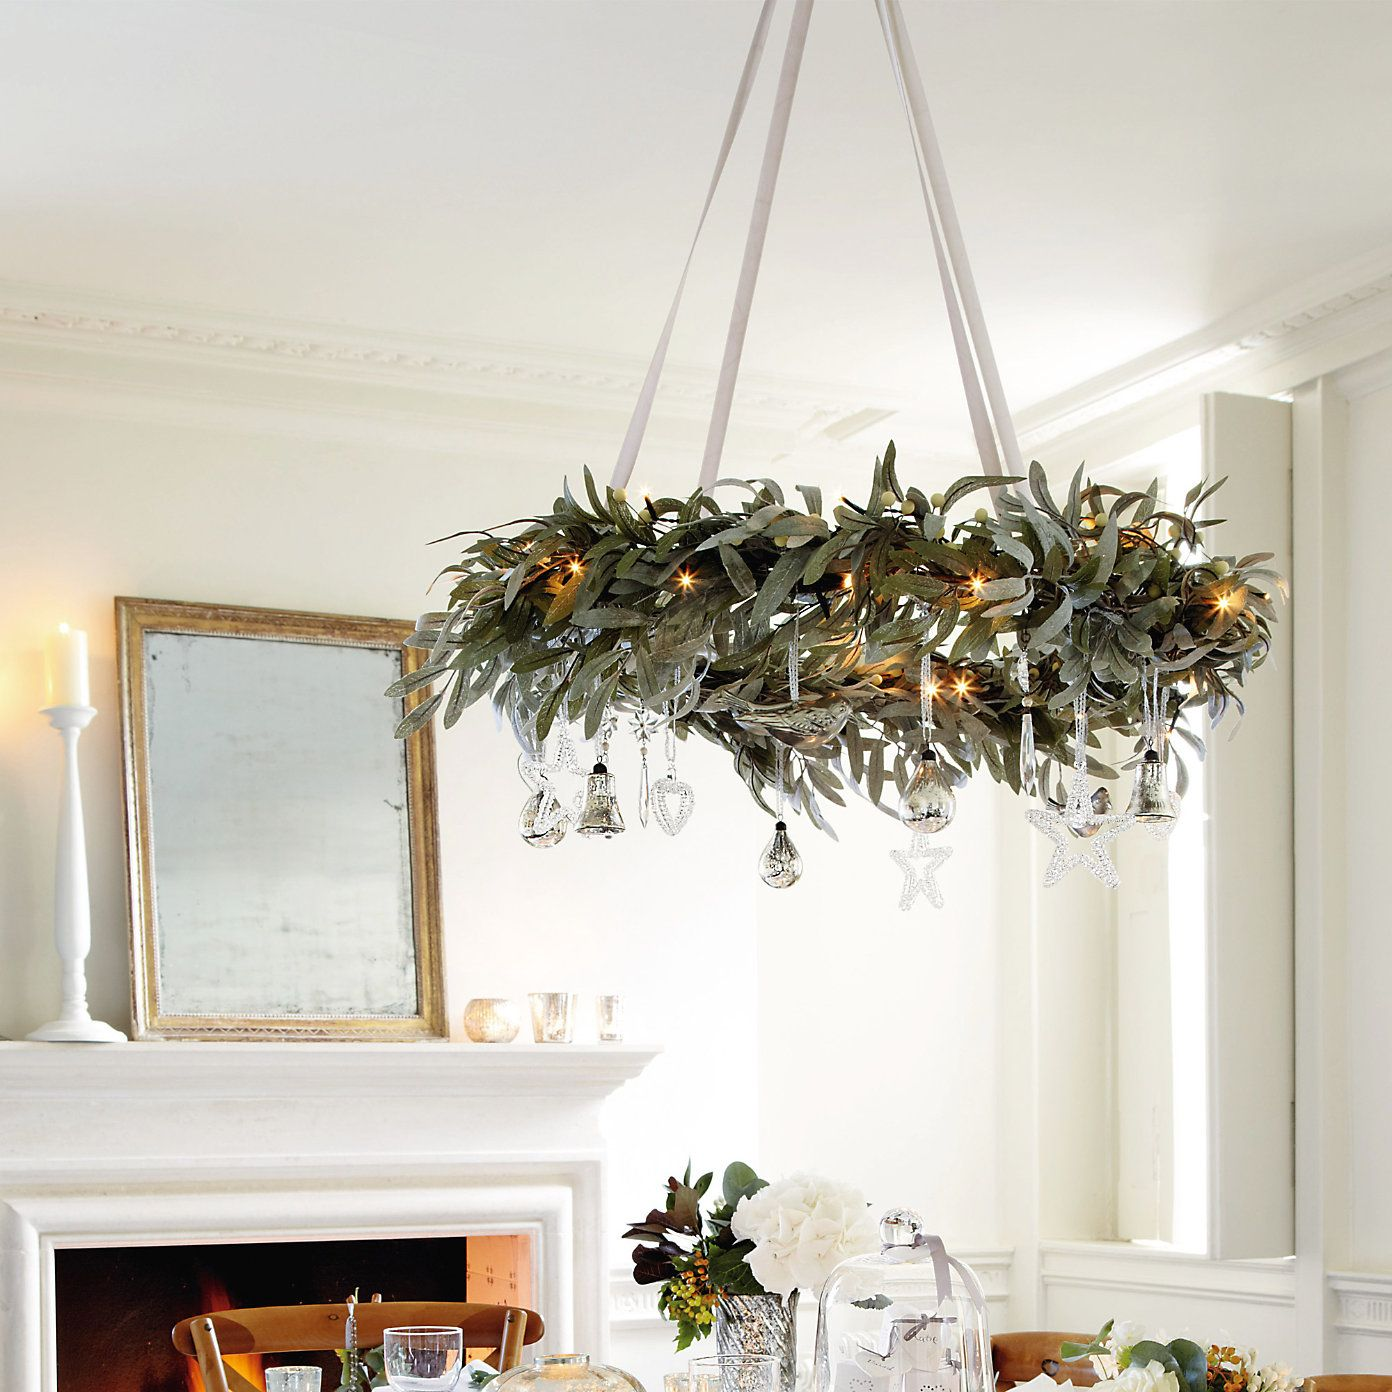 This Frosted Leaf Wreath Would Be So Pretty Over The Bride And Groom S Table Or The C Christmas Chandelier Christmas Table Settings Christmas Table Decorations